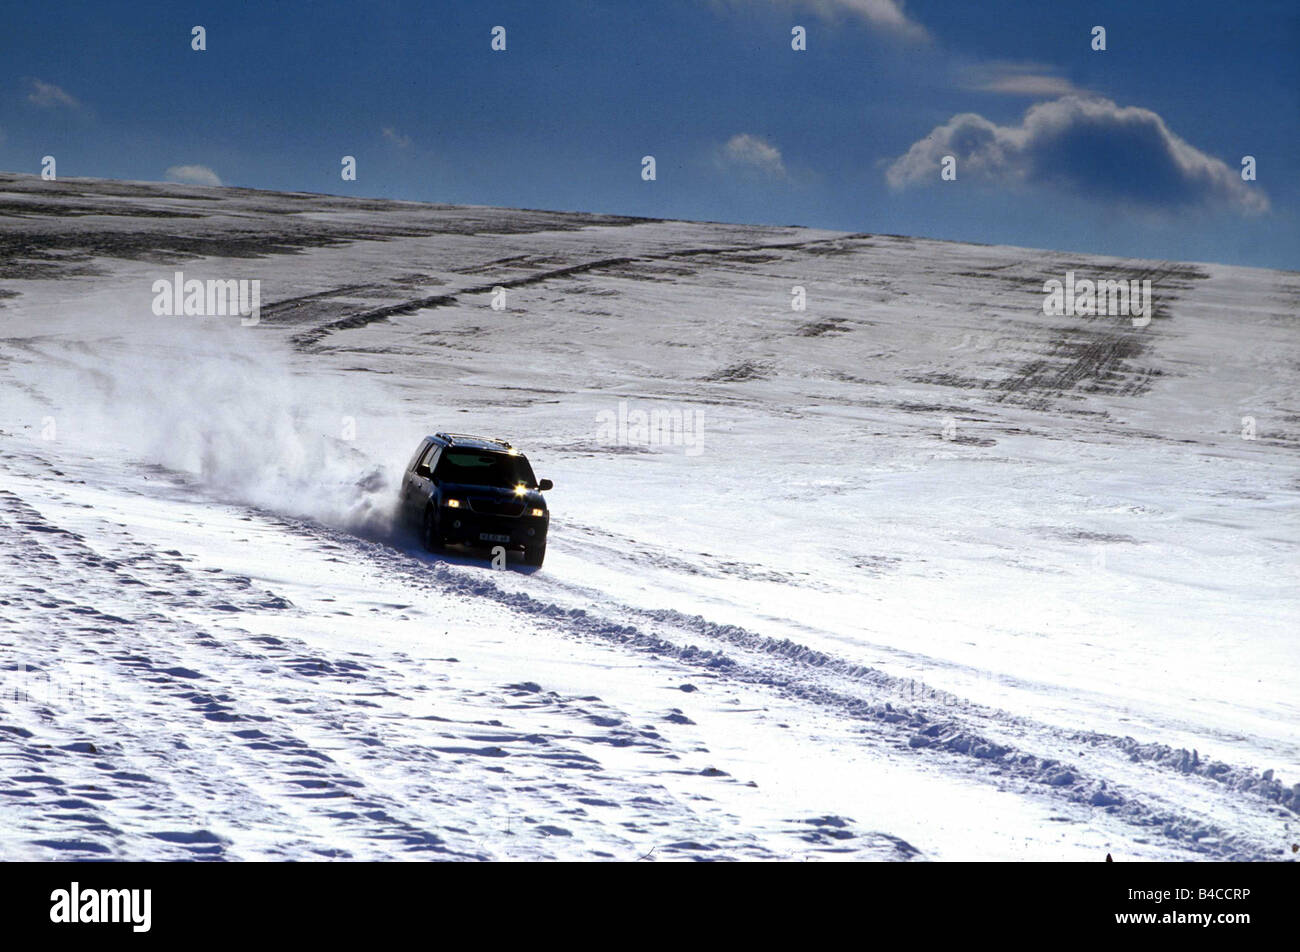 Car, Lincoln Navigator, cross country vehicle, model year 1999-, black, driving, Winter, Snow, snow-covered street, - Stock Image